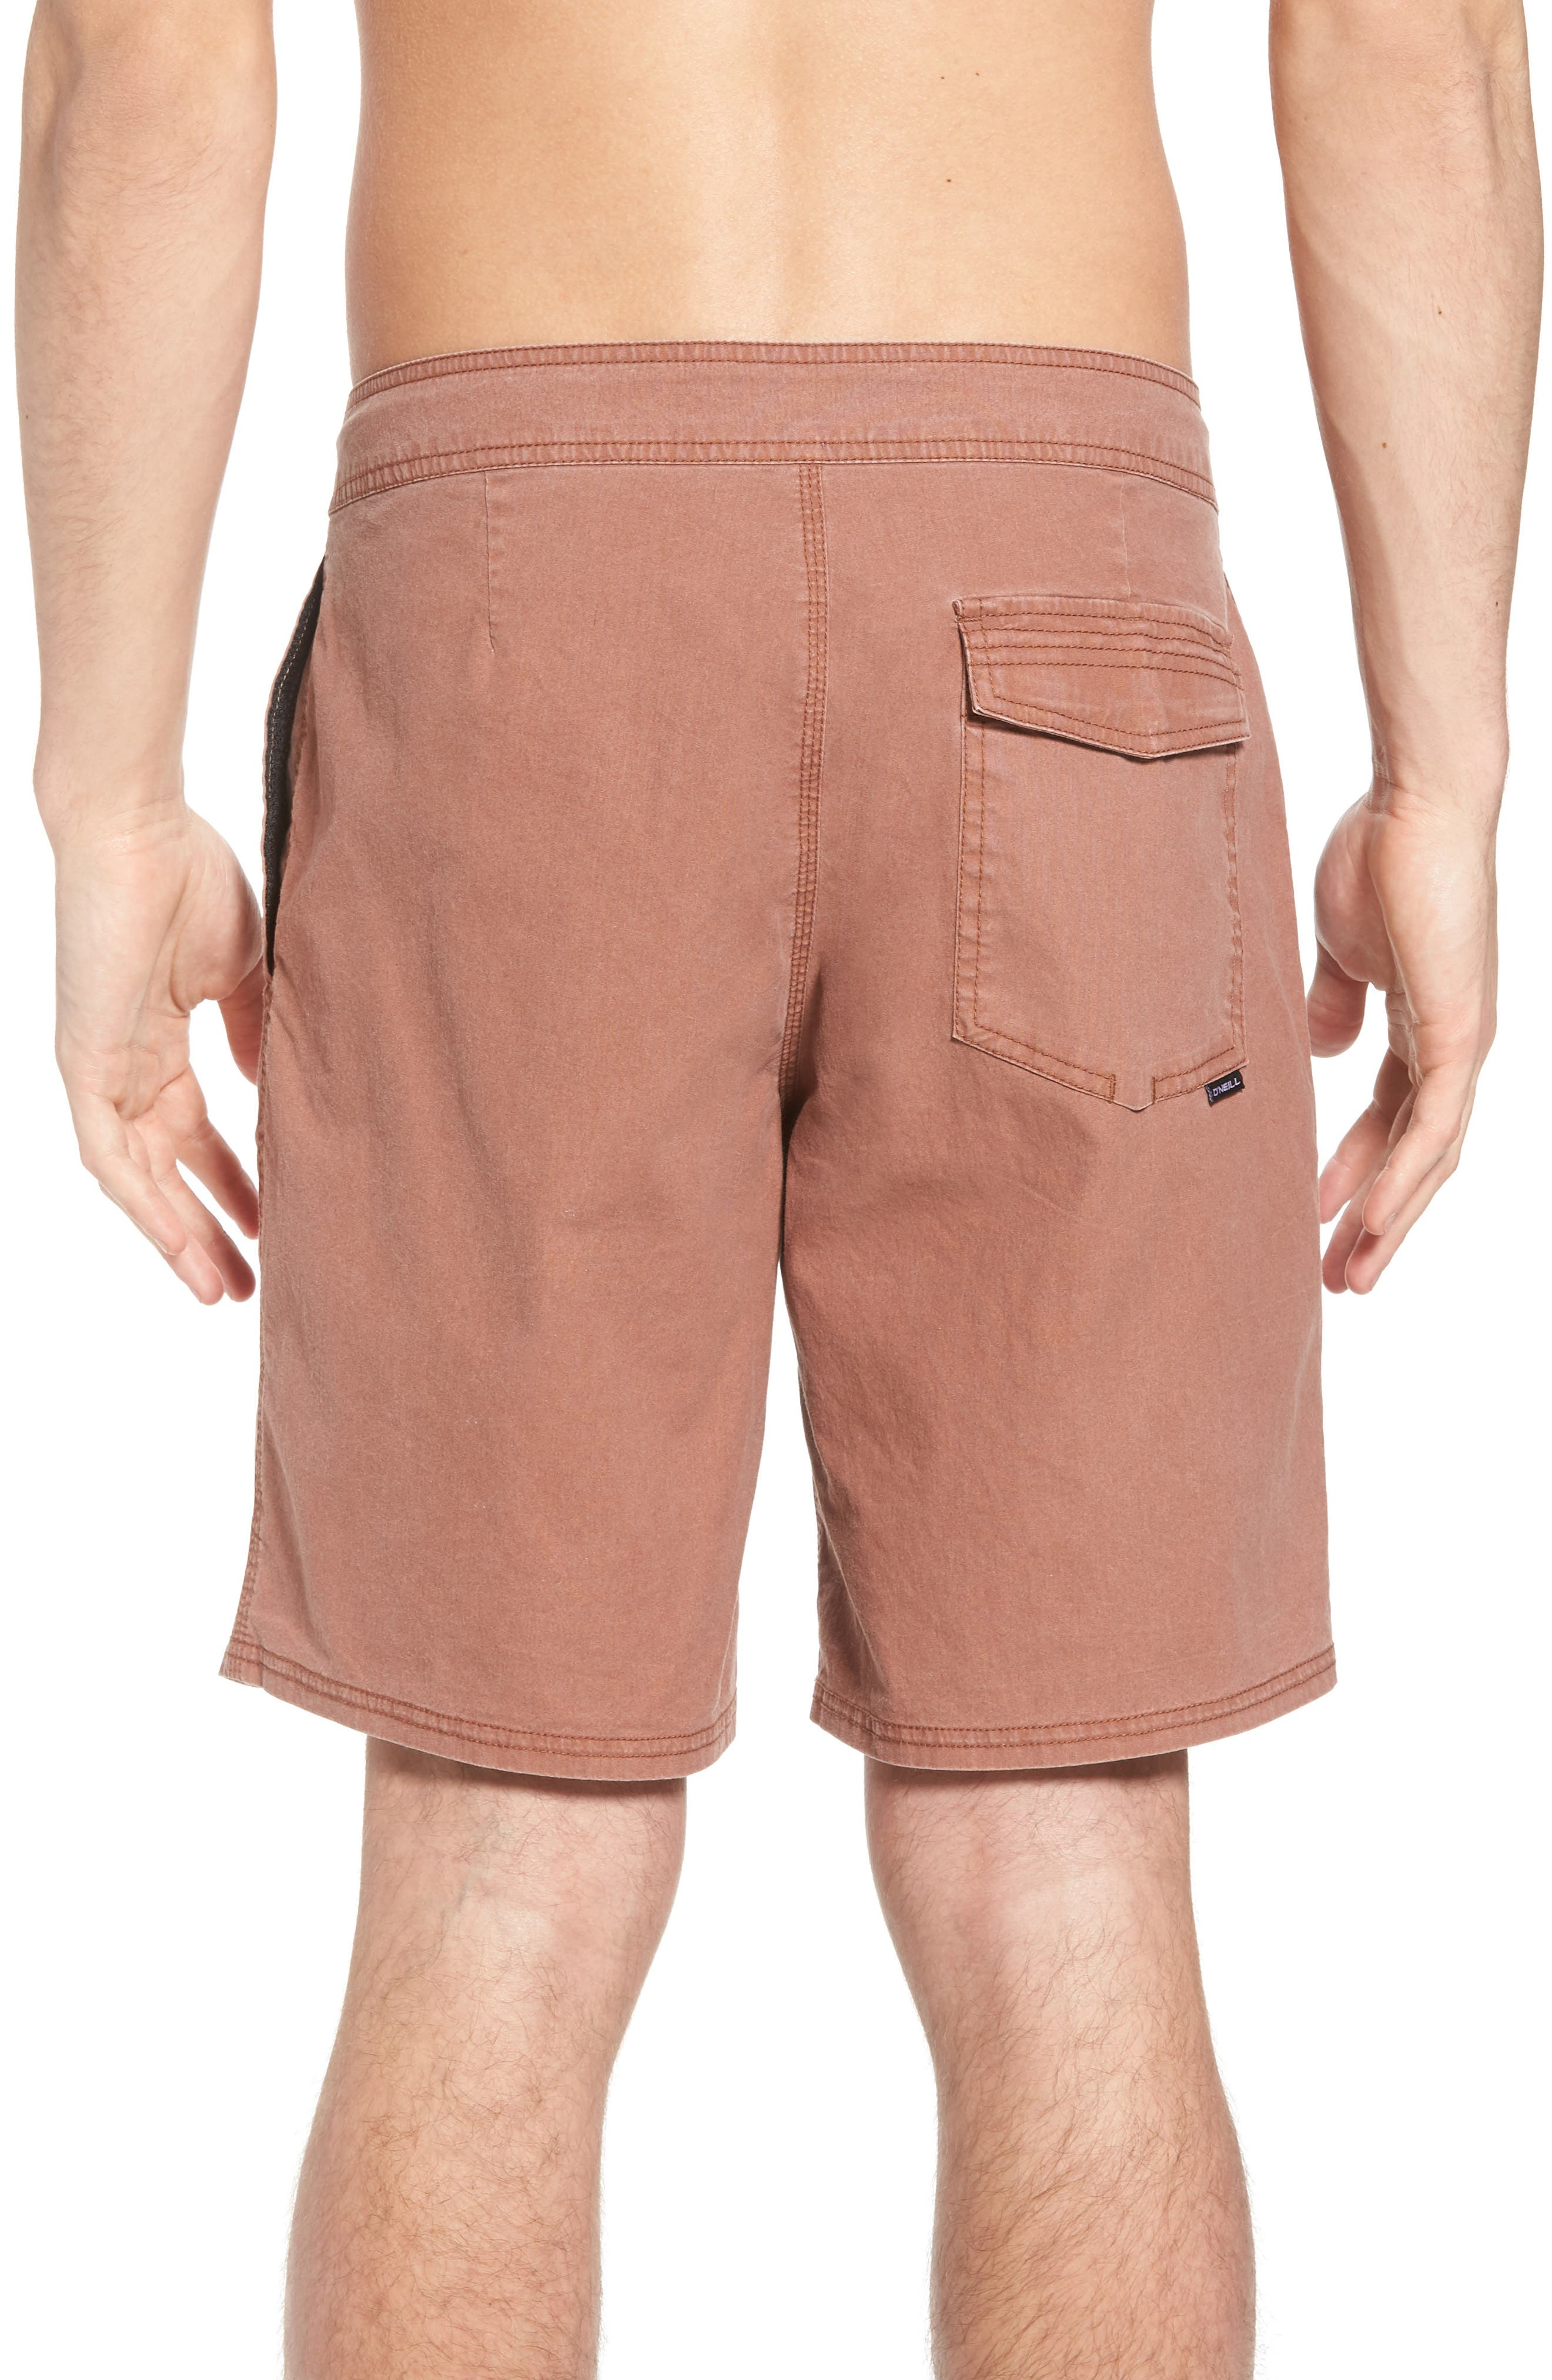 Faded Cruzer Board Shorts,                             Alternate thumbnail 2, color,                             Russet